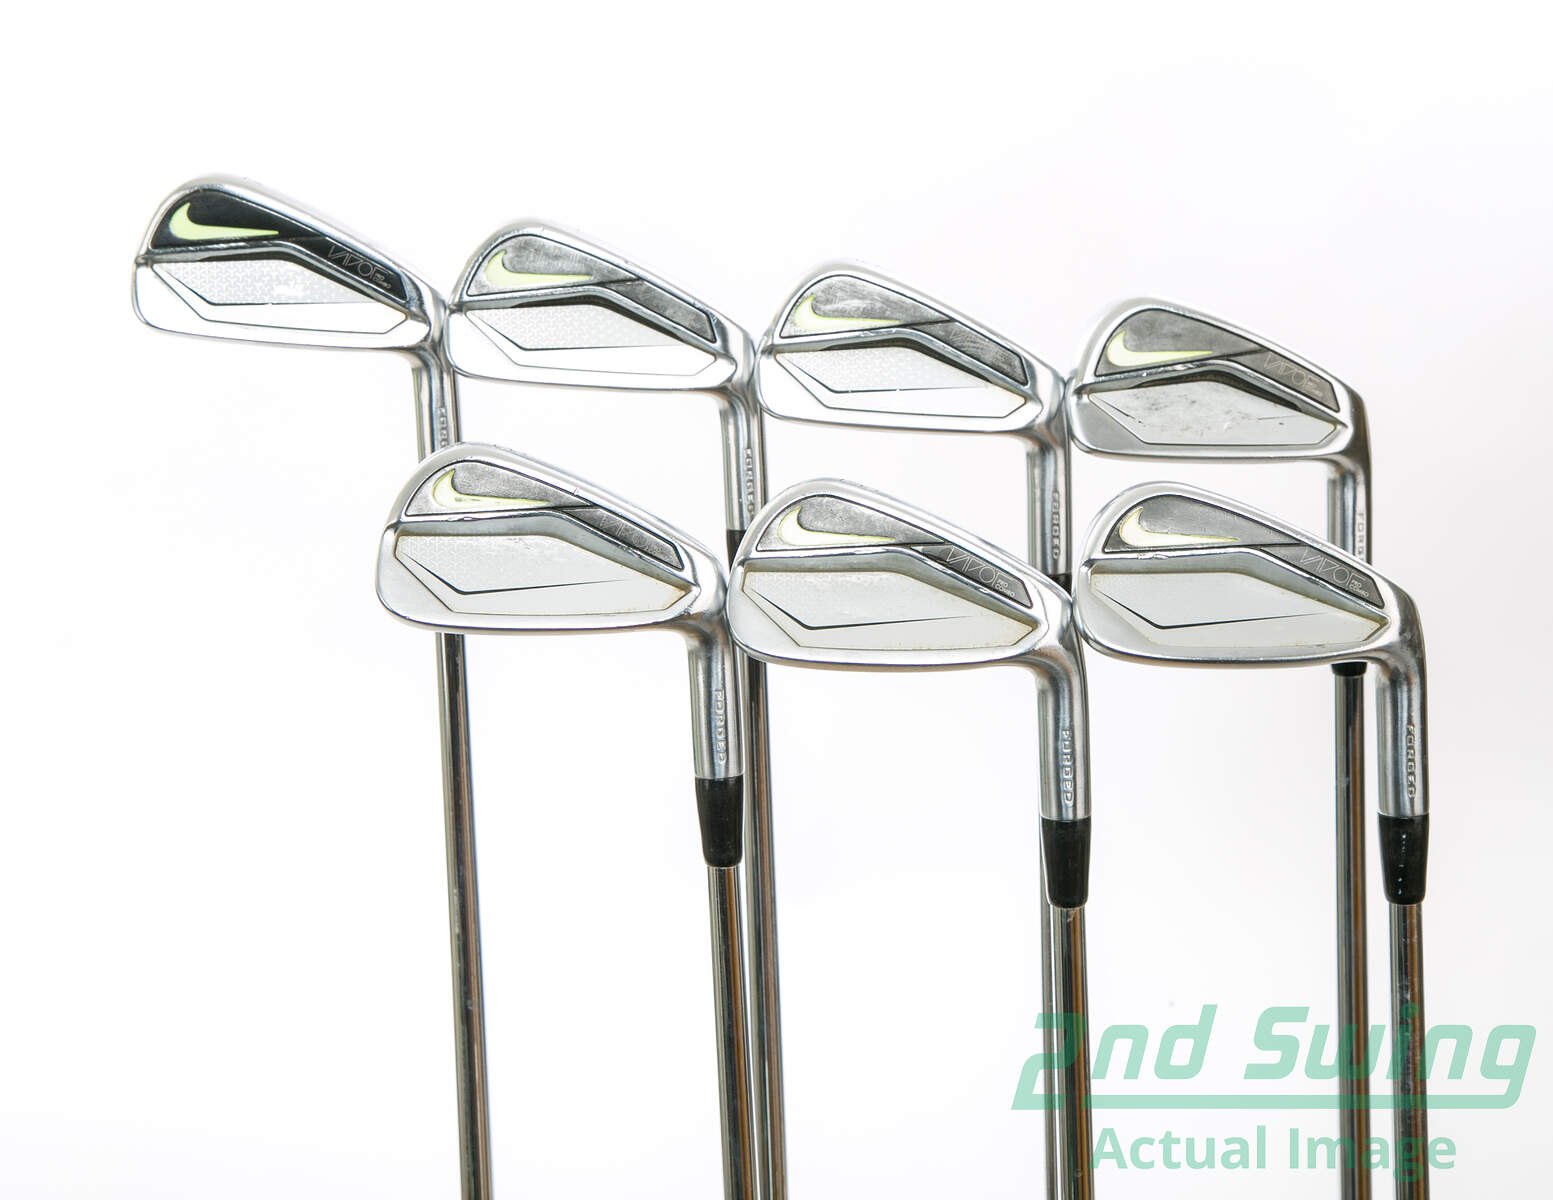 578e9d81b25 Nike Vapor Pro Combo Iron Set 4-PW Project X Rifle 6.5 Steel X-Stiff Right  Handed 38